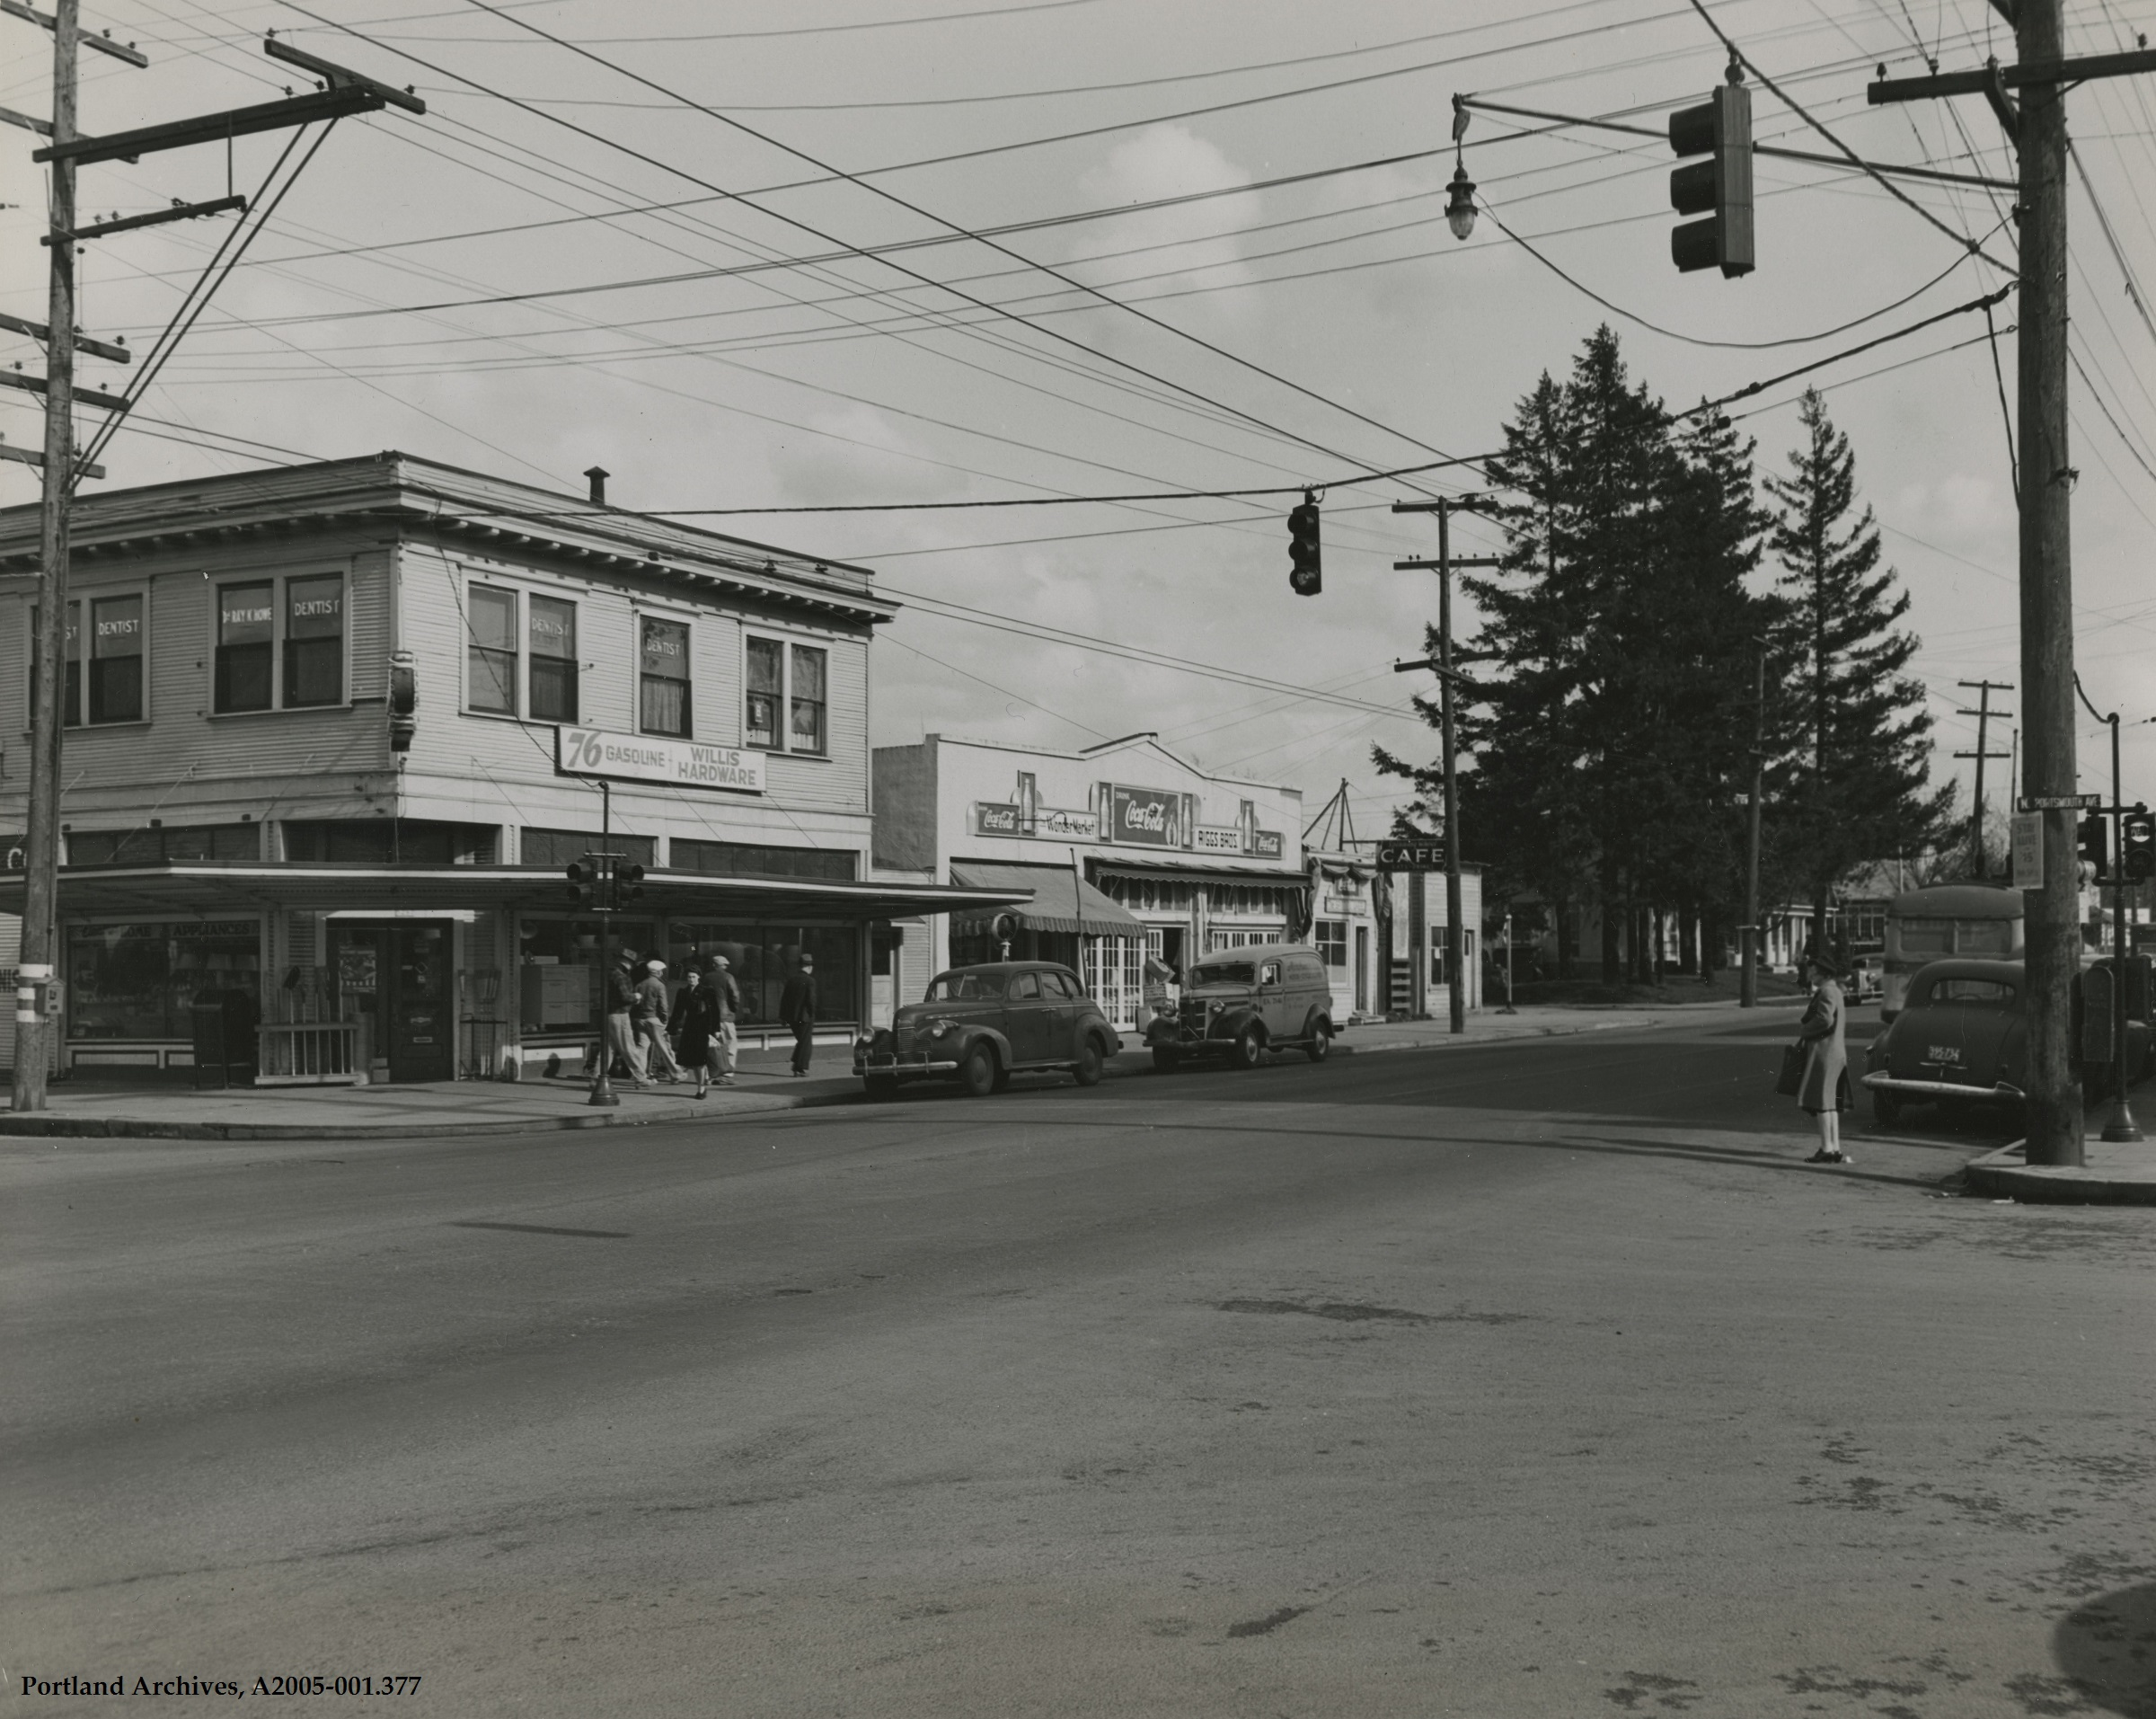 1945-mar-31_n-lombard-st-and-n-portsmouth-ave-looking-northeast_a2005-001-377